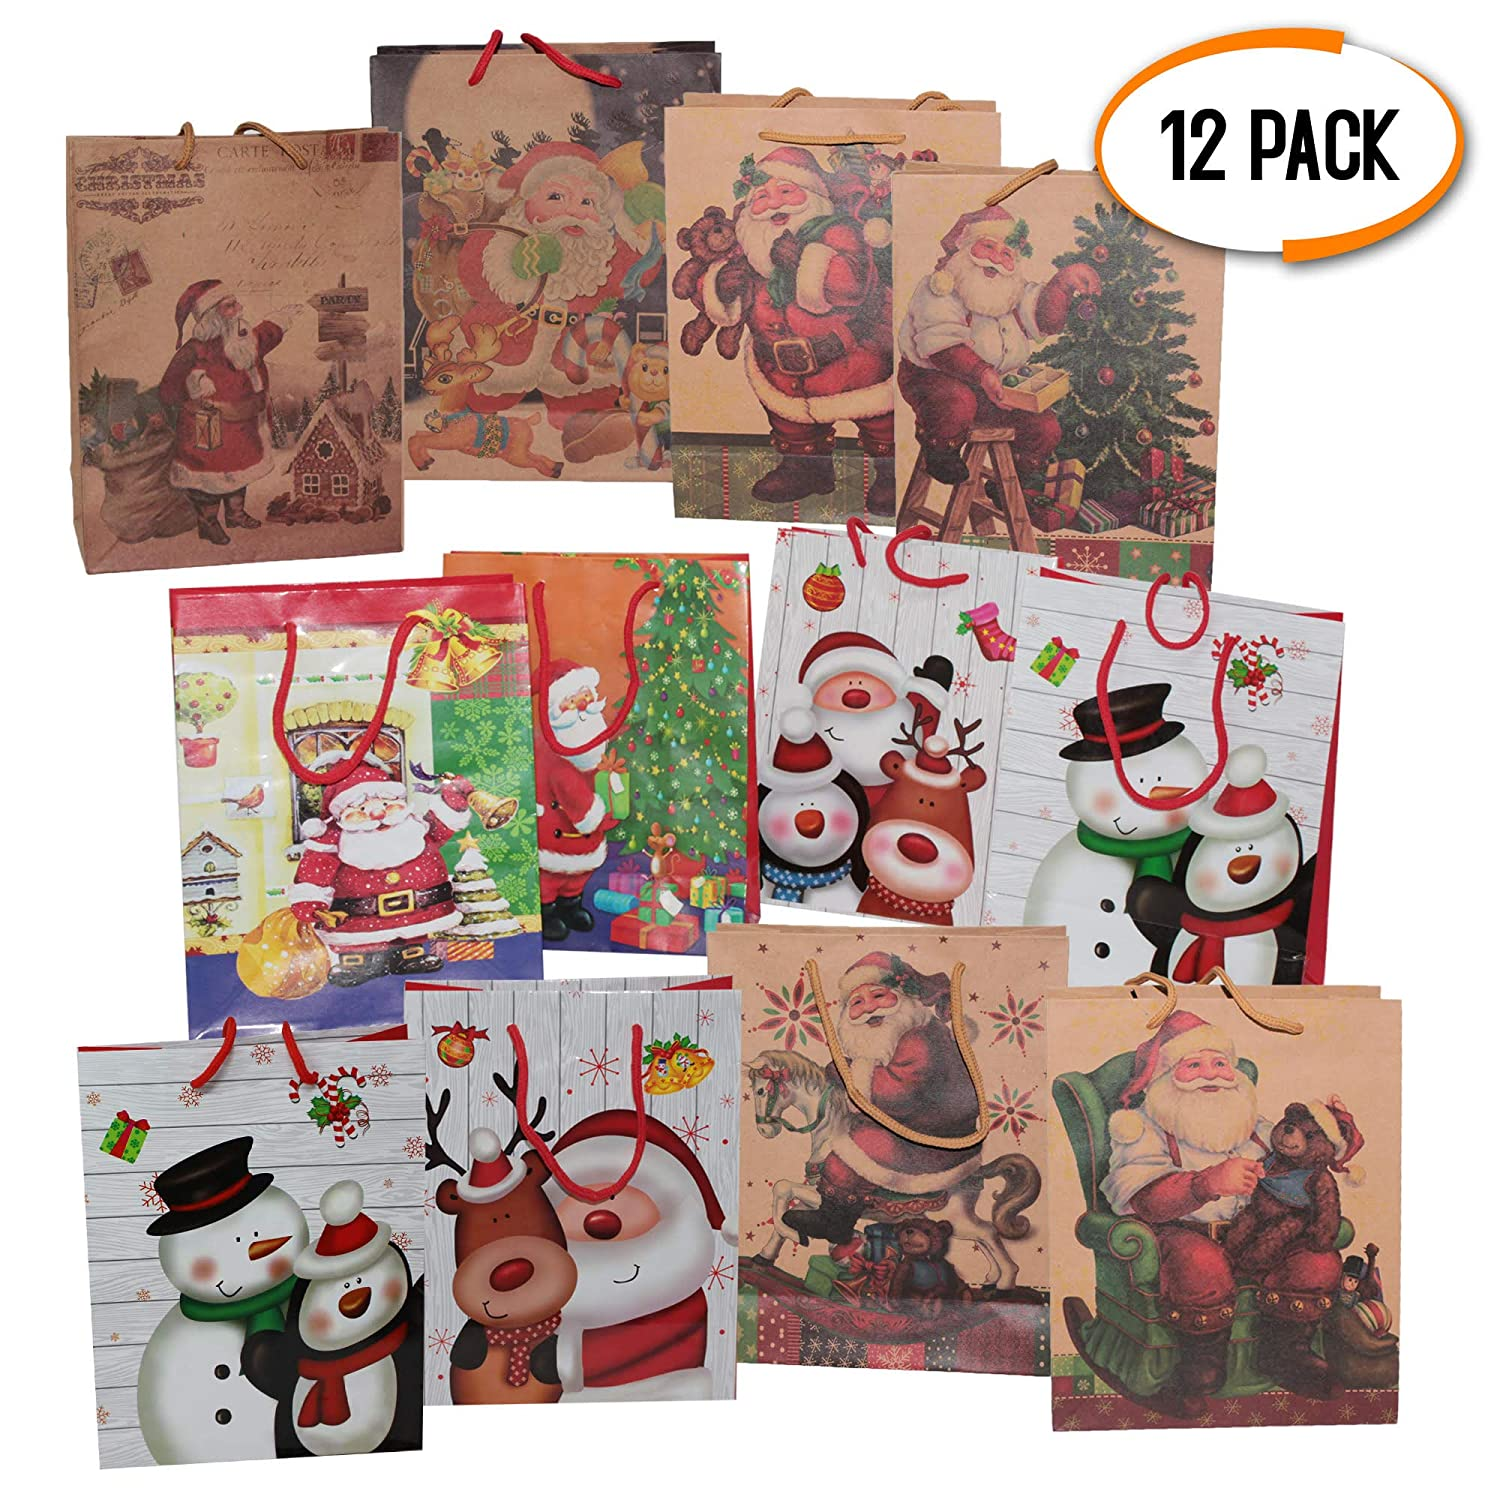 12 Christmas Themed Gift Paper Bags Set Assorted Designs Perfect for Xmas /& Party Gifts and Present Wrapping